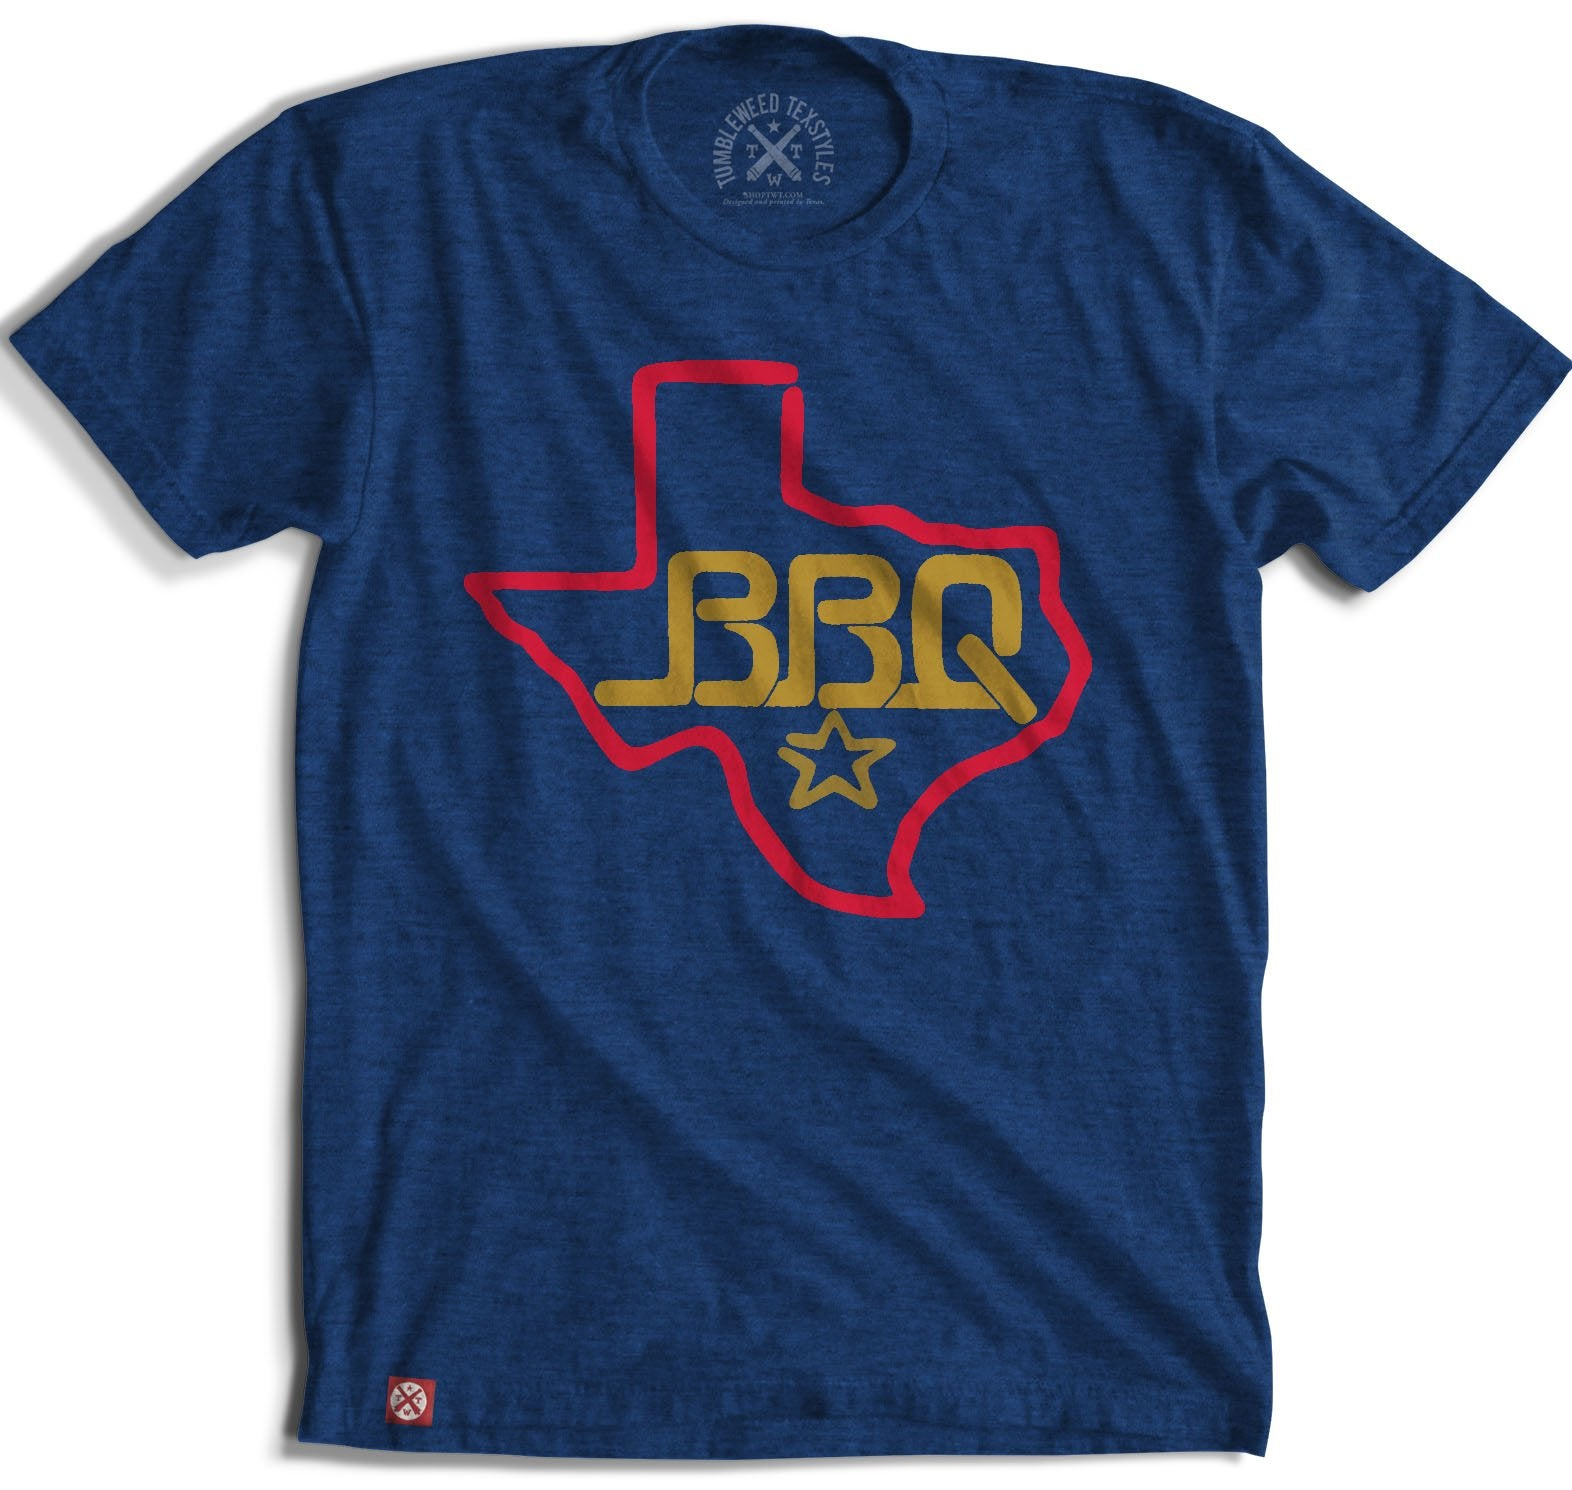 Royal TEXAS BBQ T-SHIRT